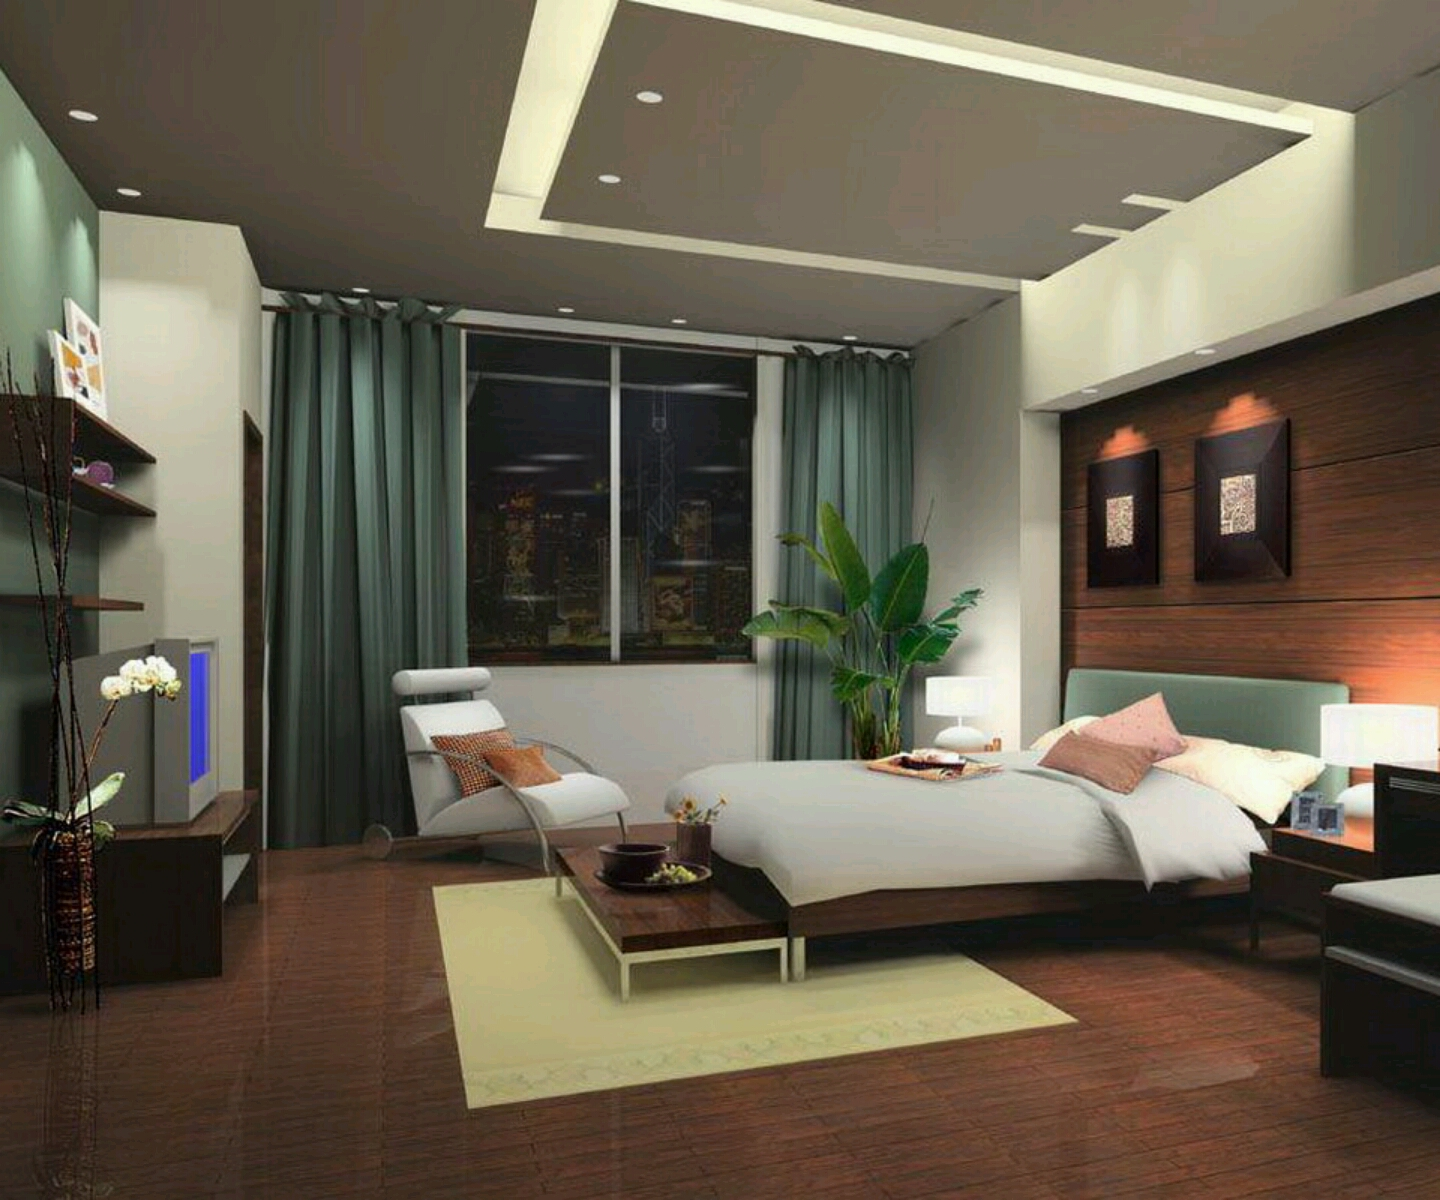 new home designs latest modern bedrooms designs best ideas ForNew Bedroom Design